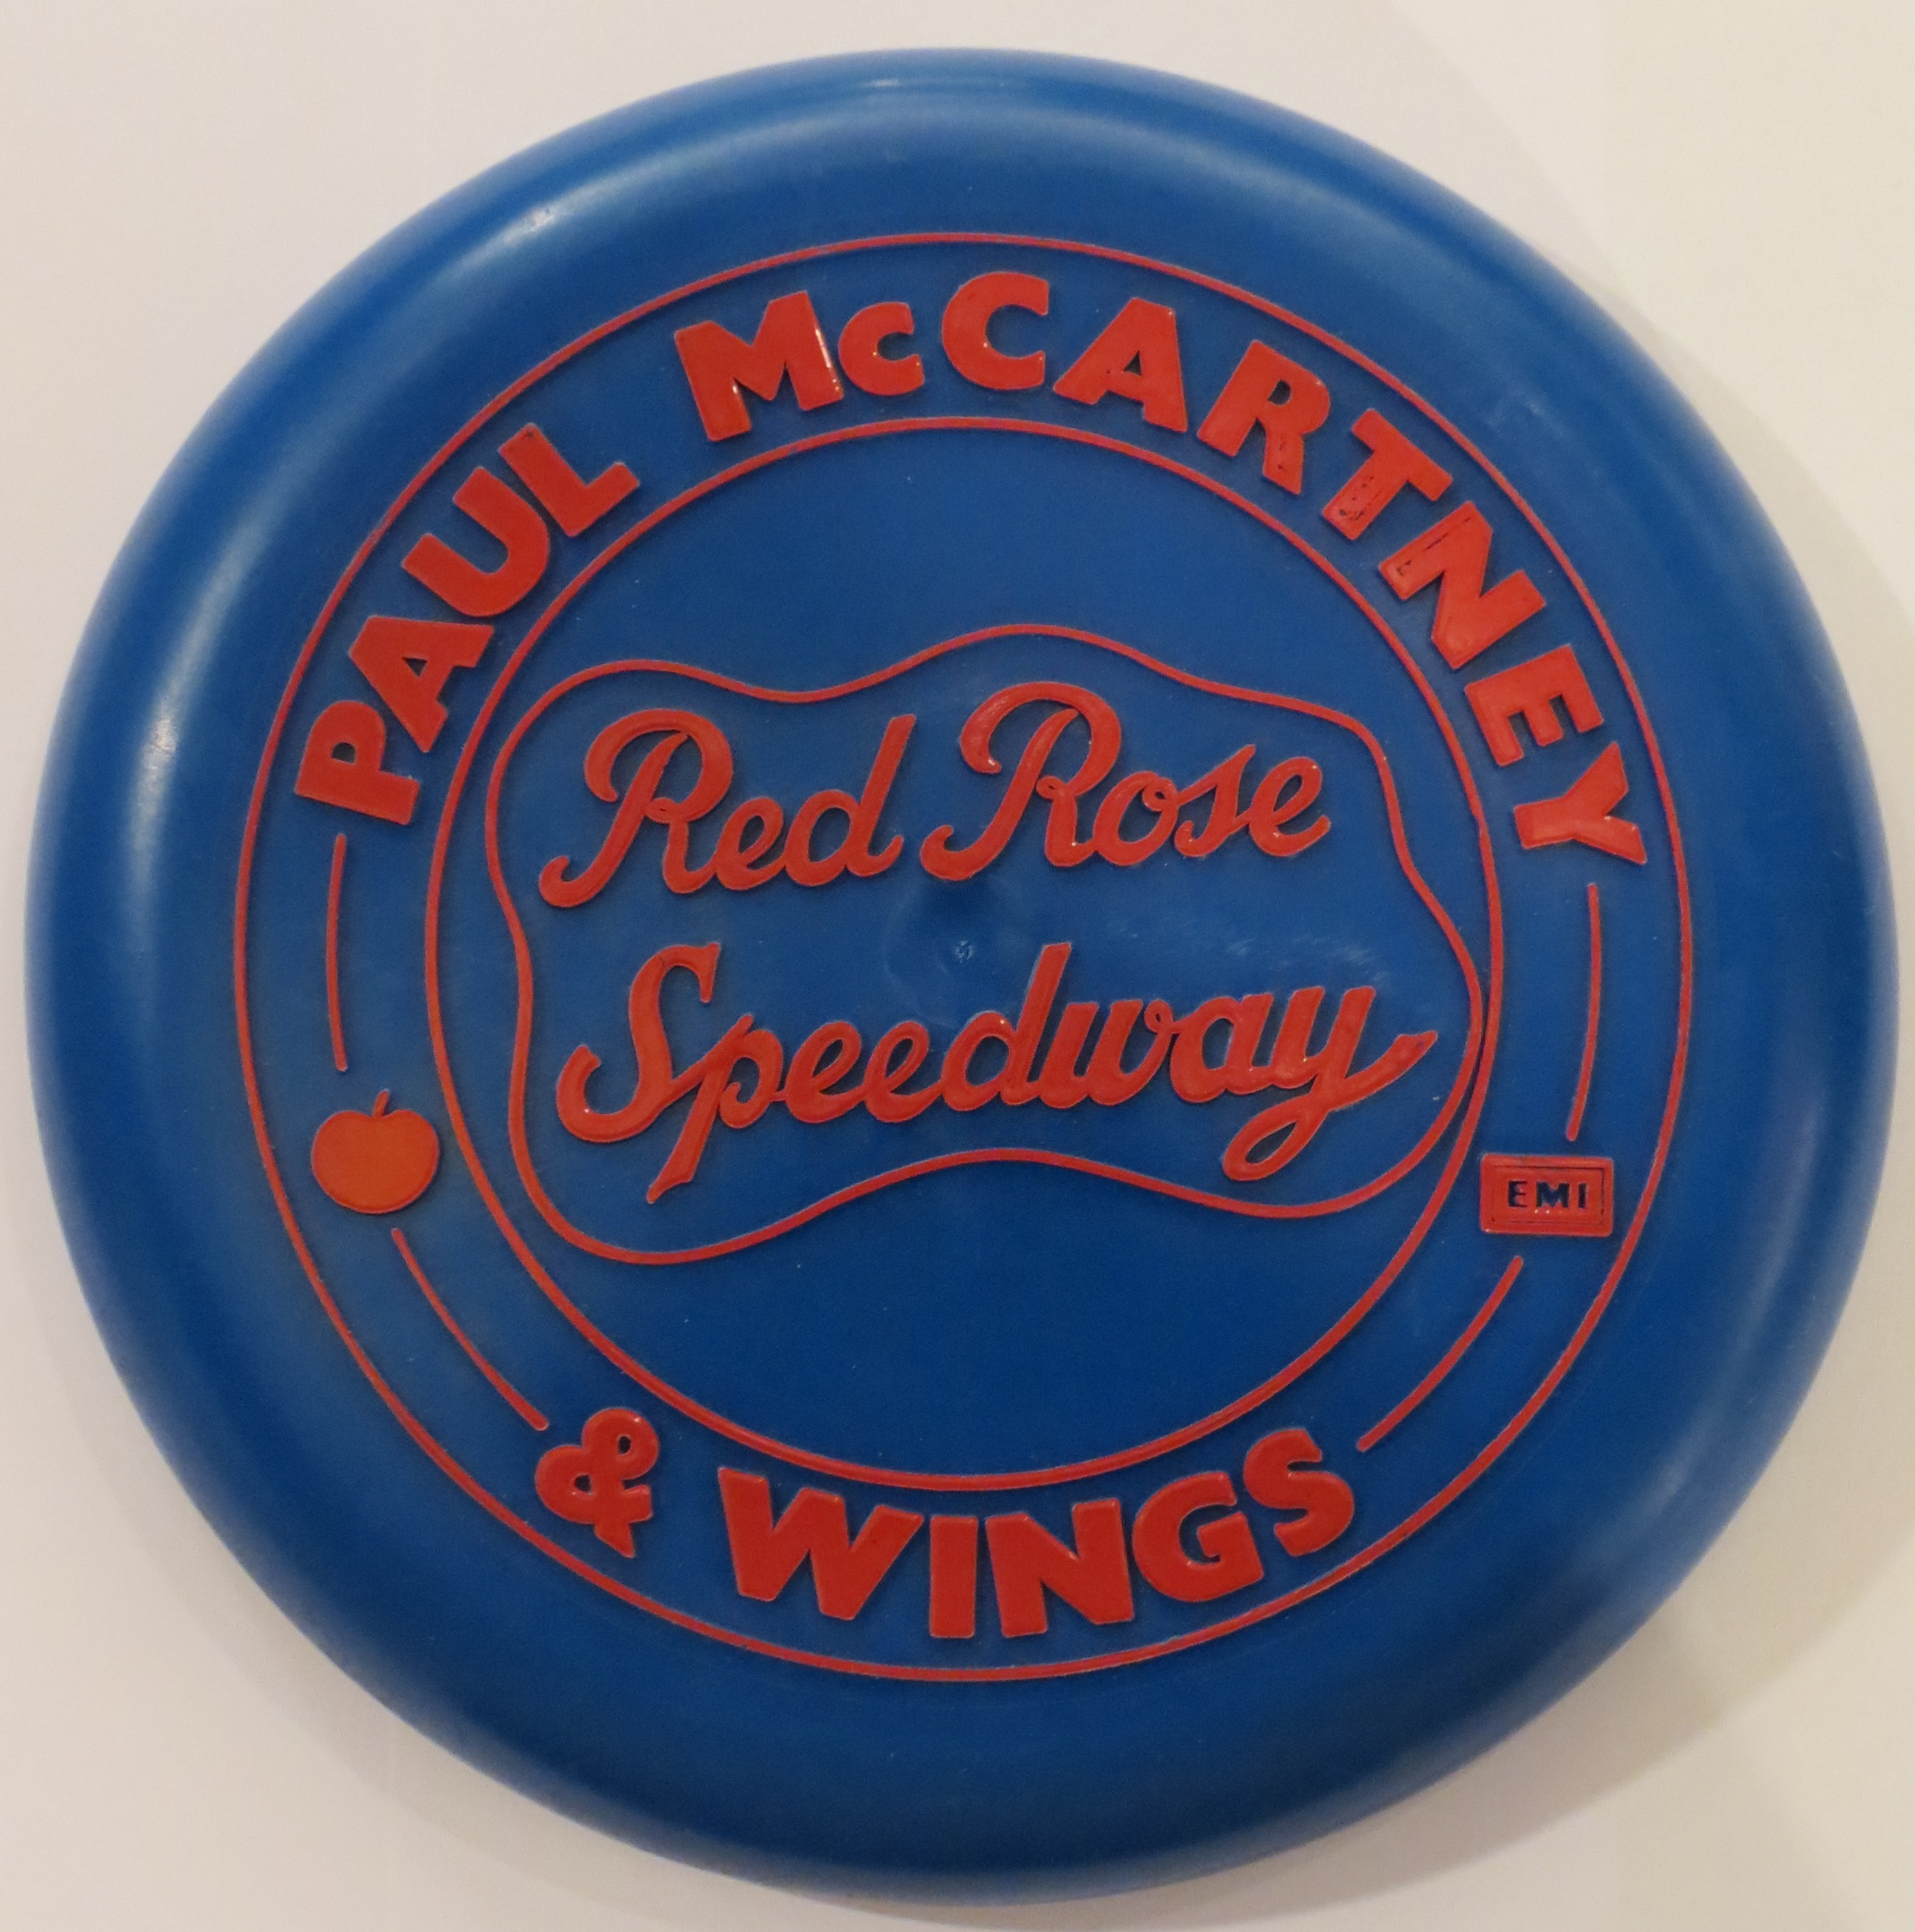 Paul McCartney Red Rose Speedway Frisbee C1973 1